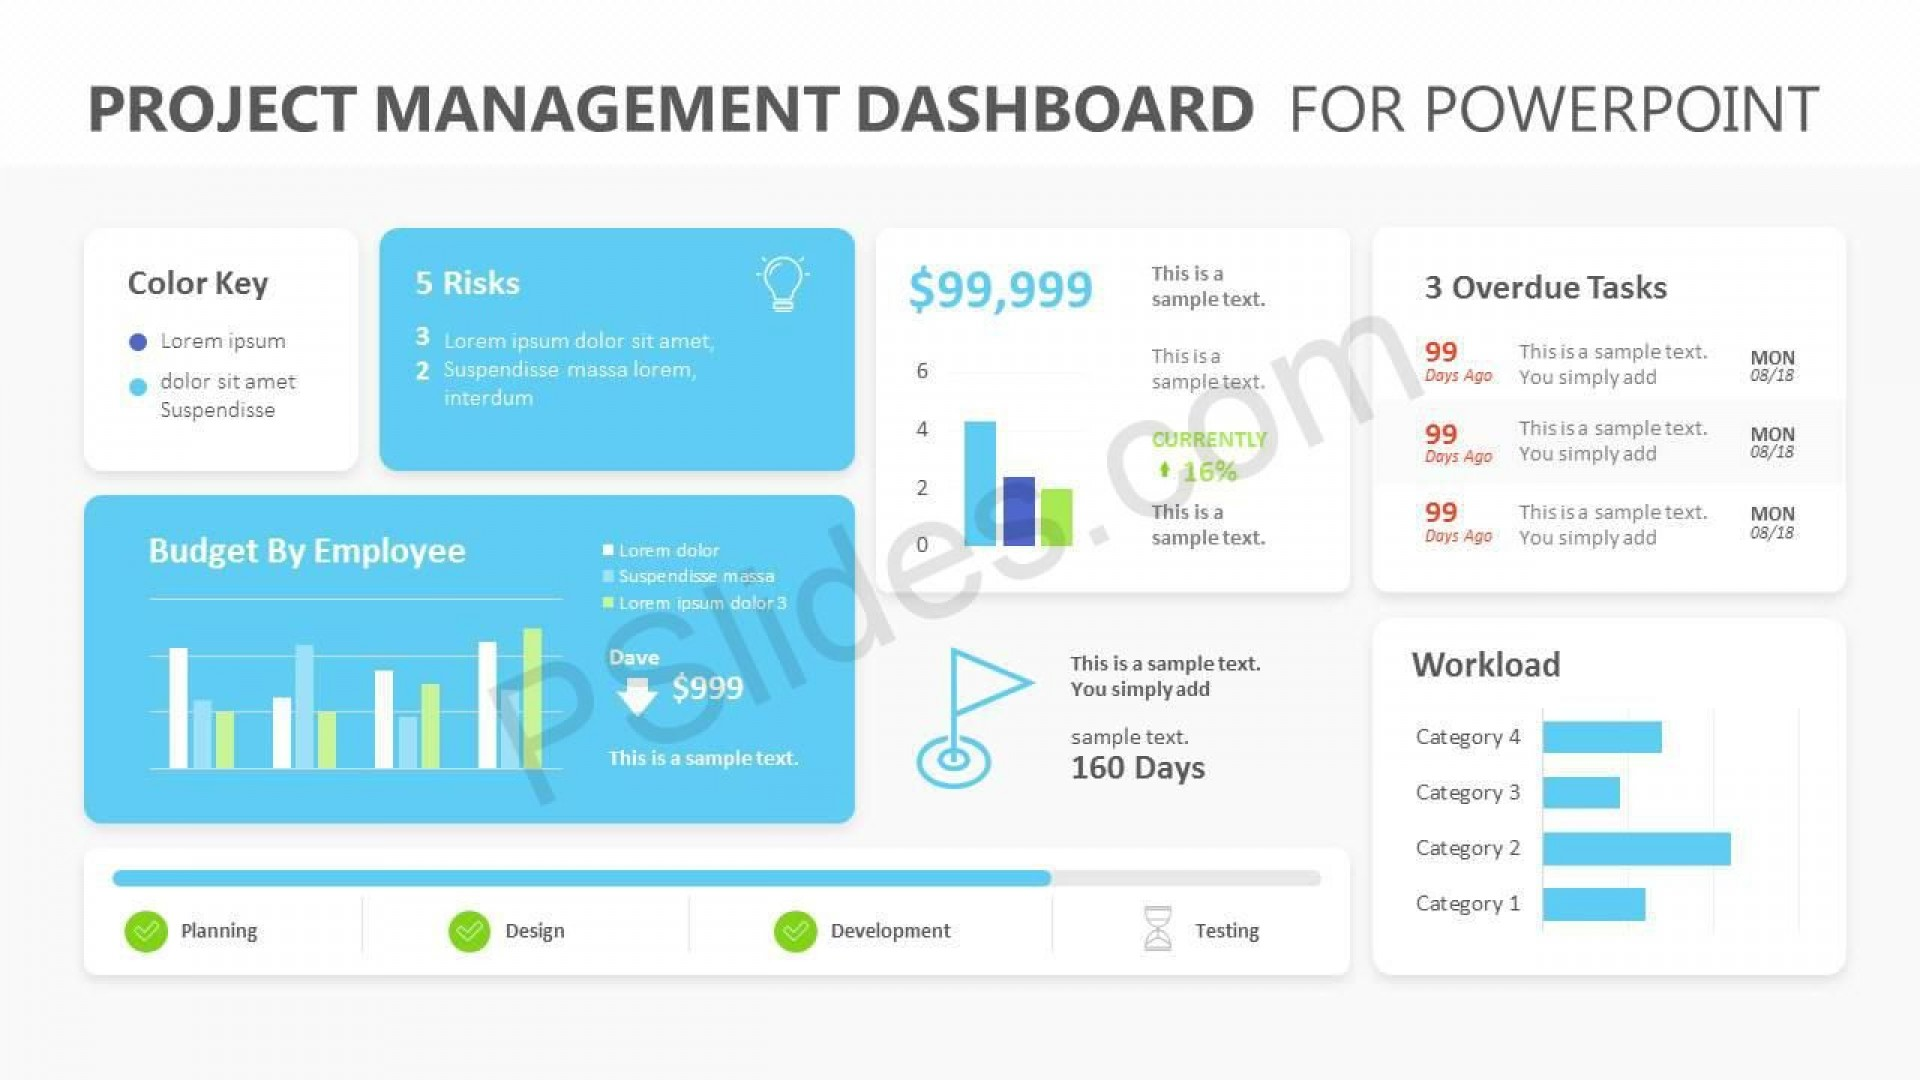 007 Exceptional Project Management Dashboard Powerpoint Template Free Download Highest Clarity 1920